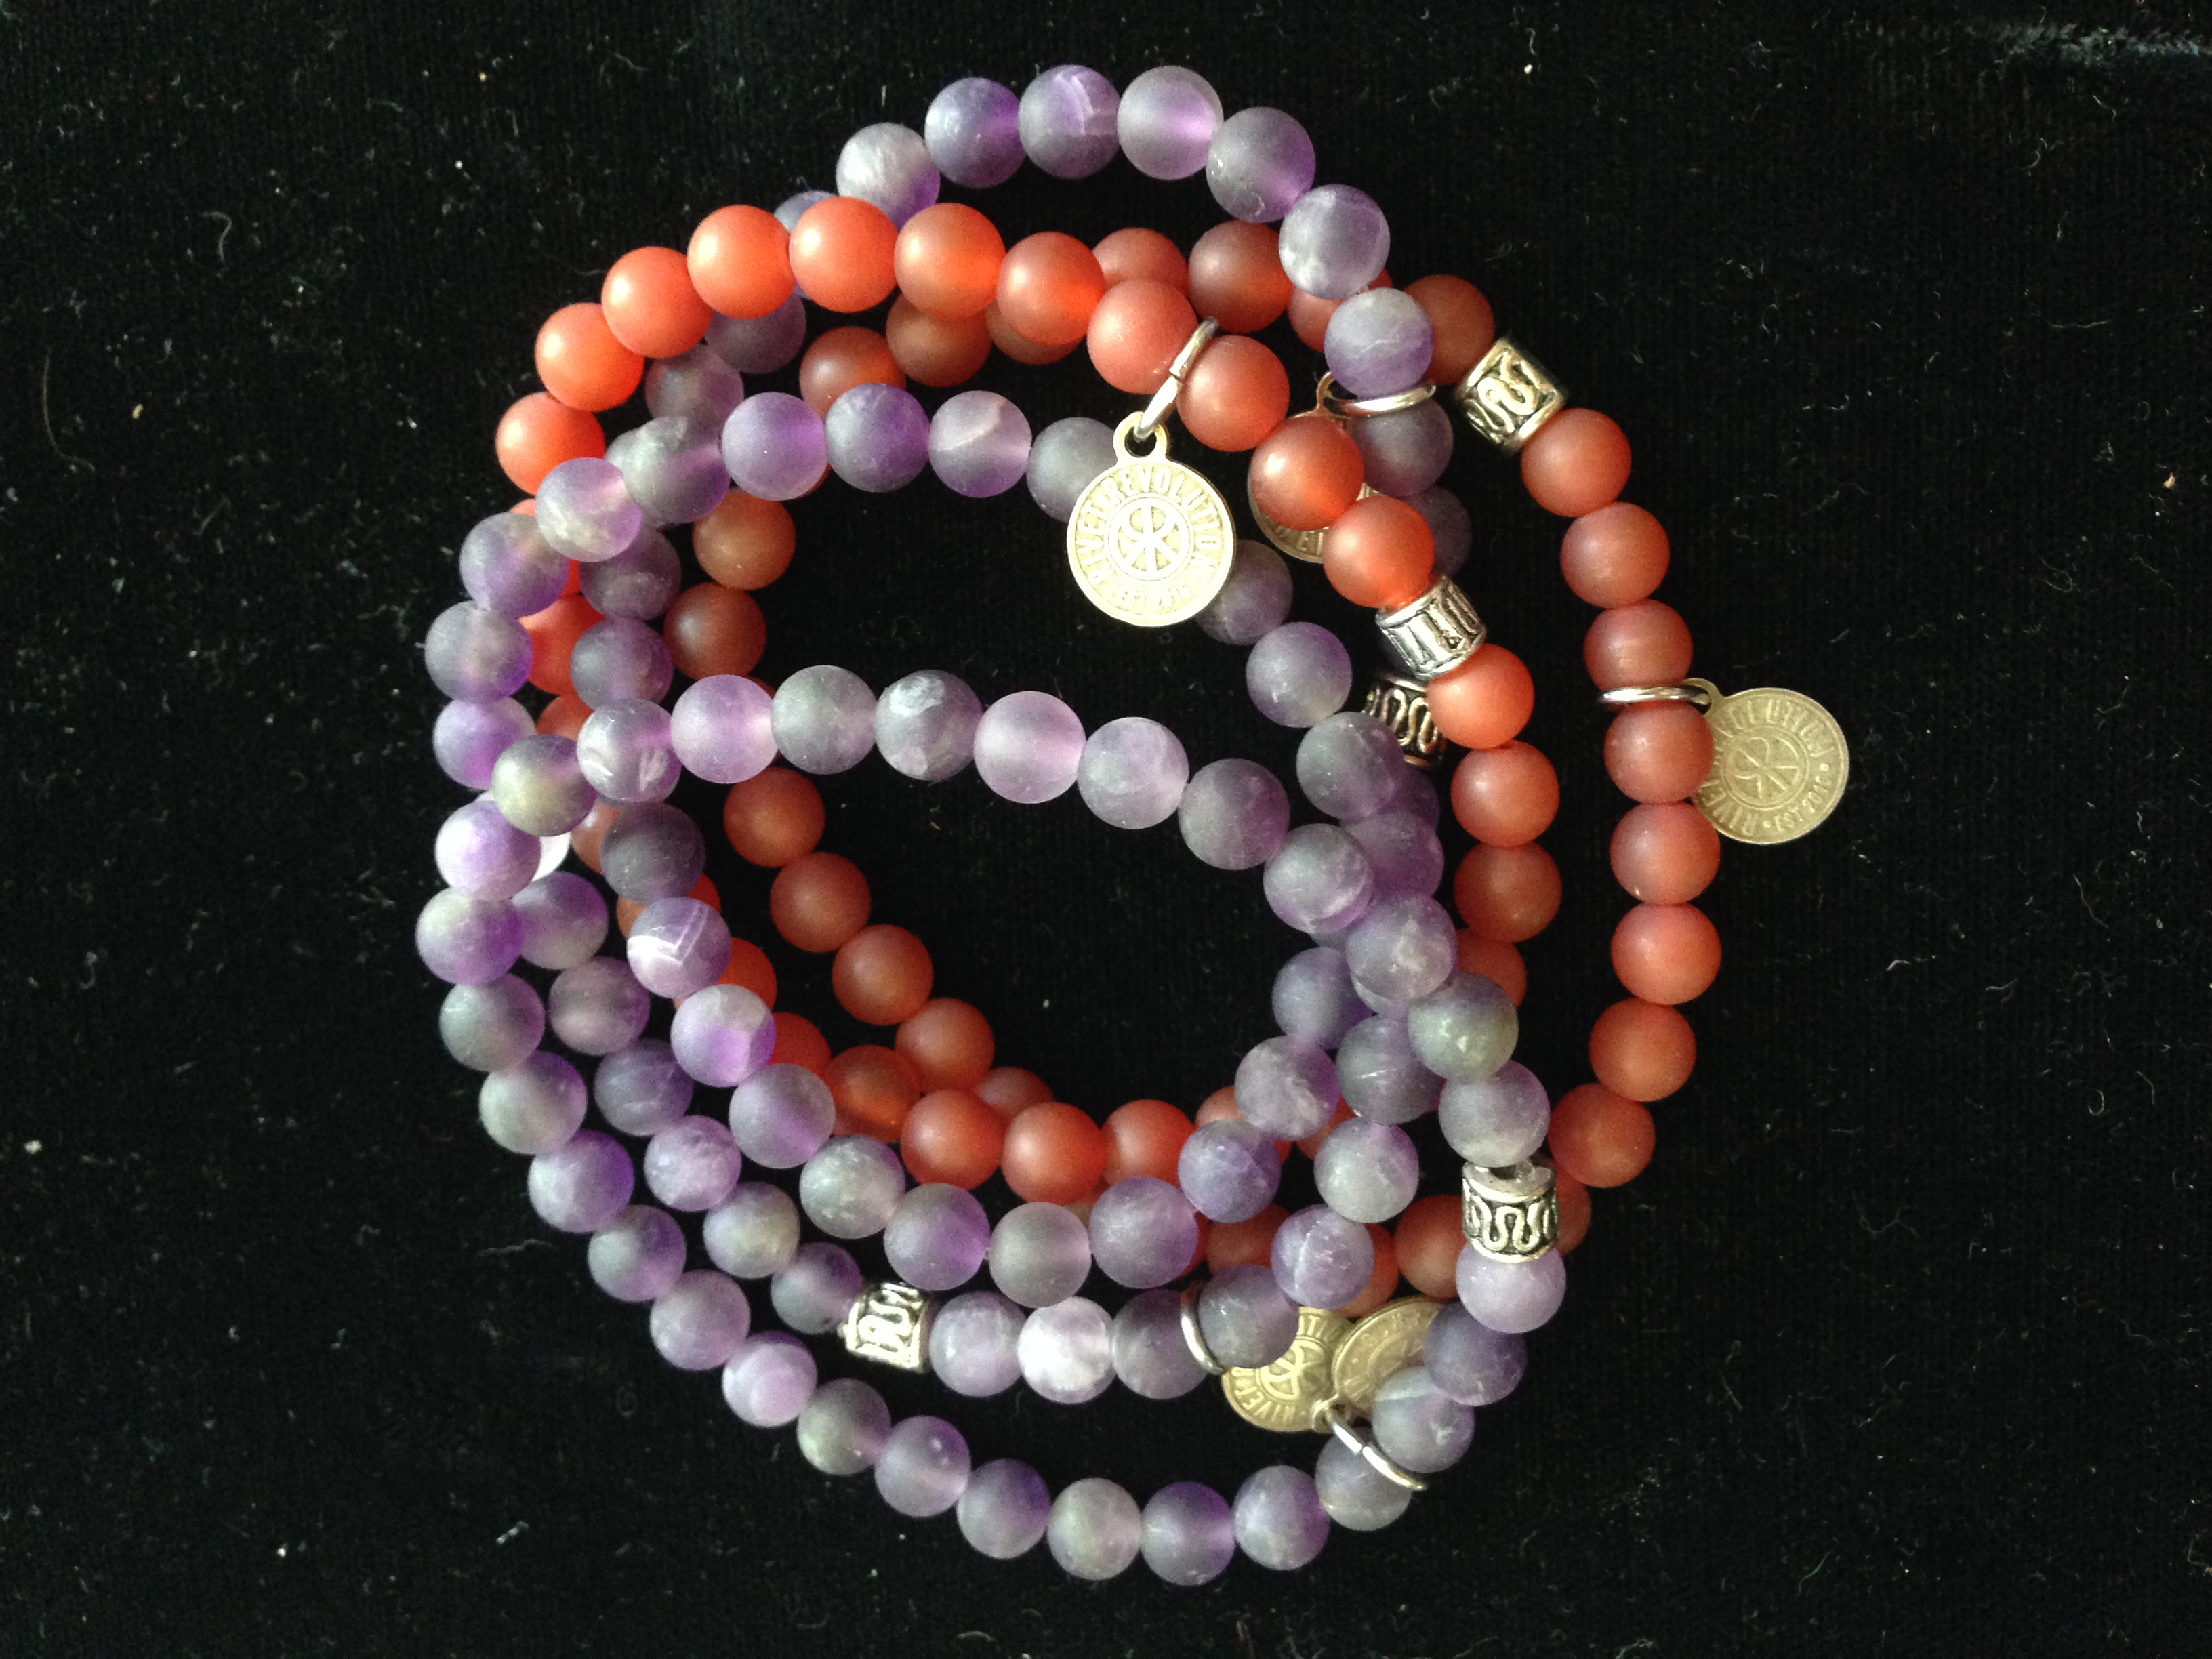 5 Amethyst and Agate Bracelets